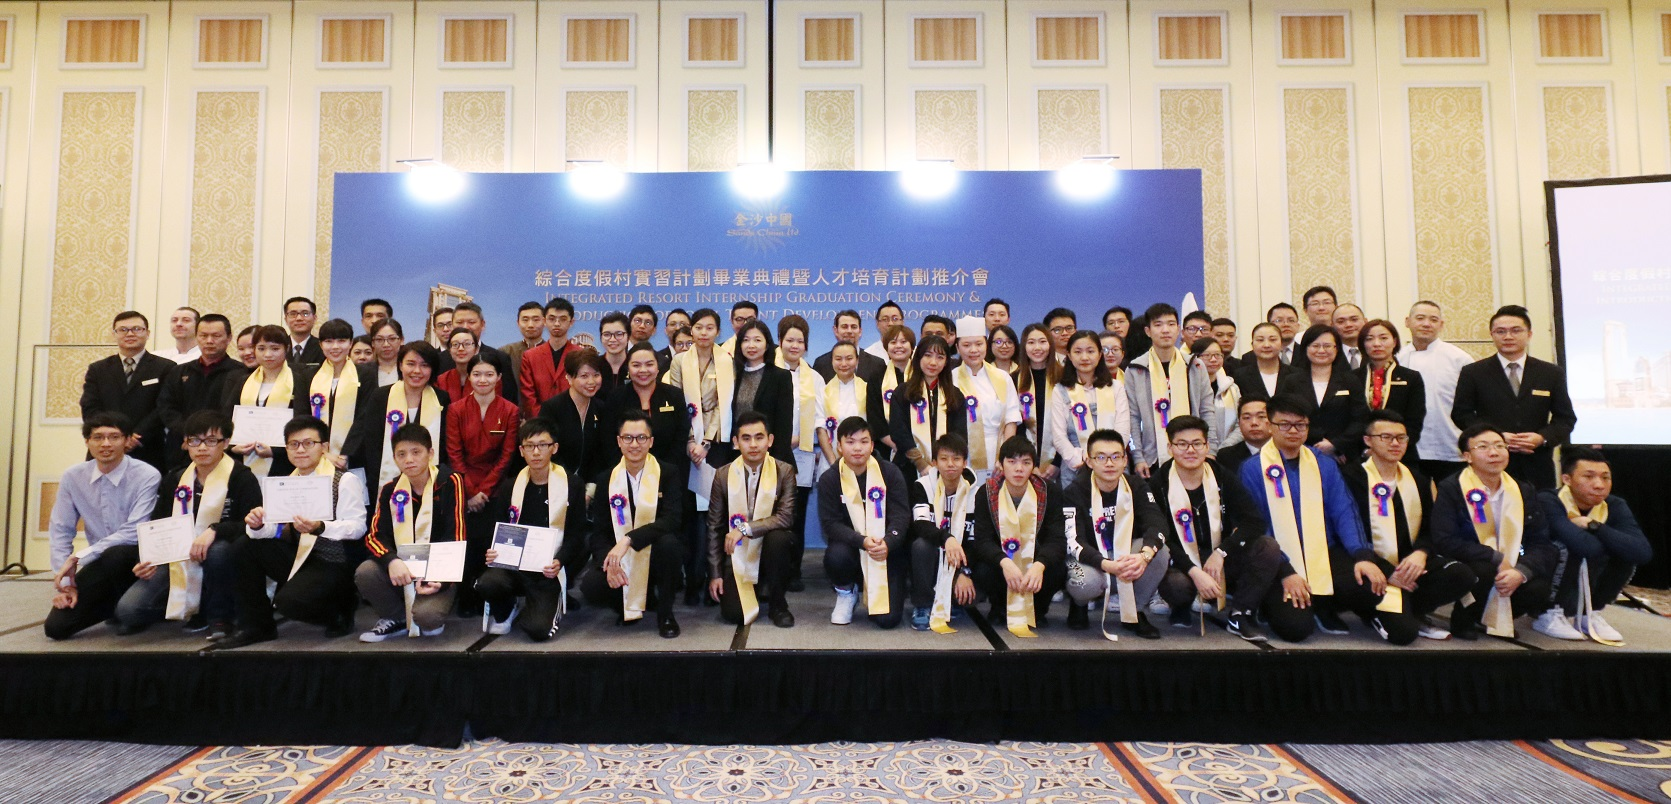 Close to 200 students graduated from Sands China's Integrated Resort Internship Programme in 2017, with 20 per cent of them either taking full-time positions with the company upon graduation or joining its Fast Track Supervisor Programme or the Career Experience Opportunities Programme (CEOP).